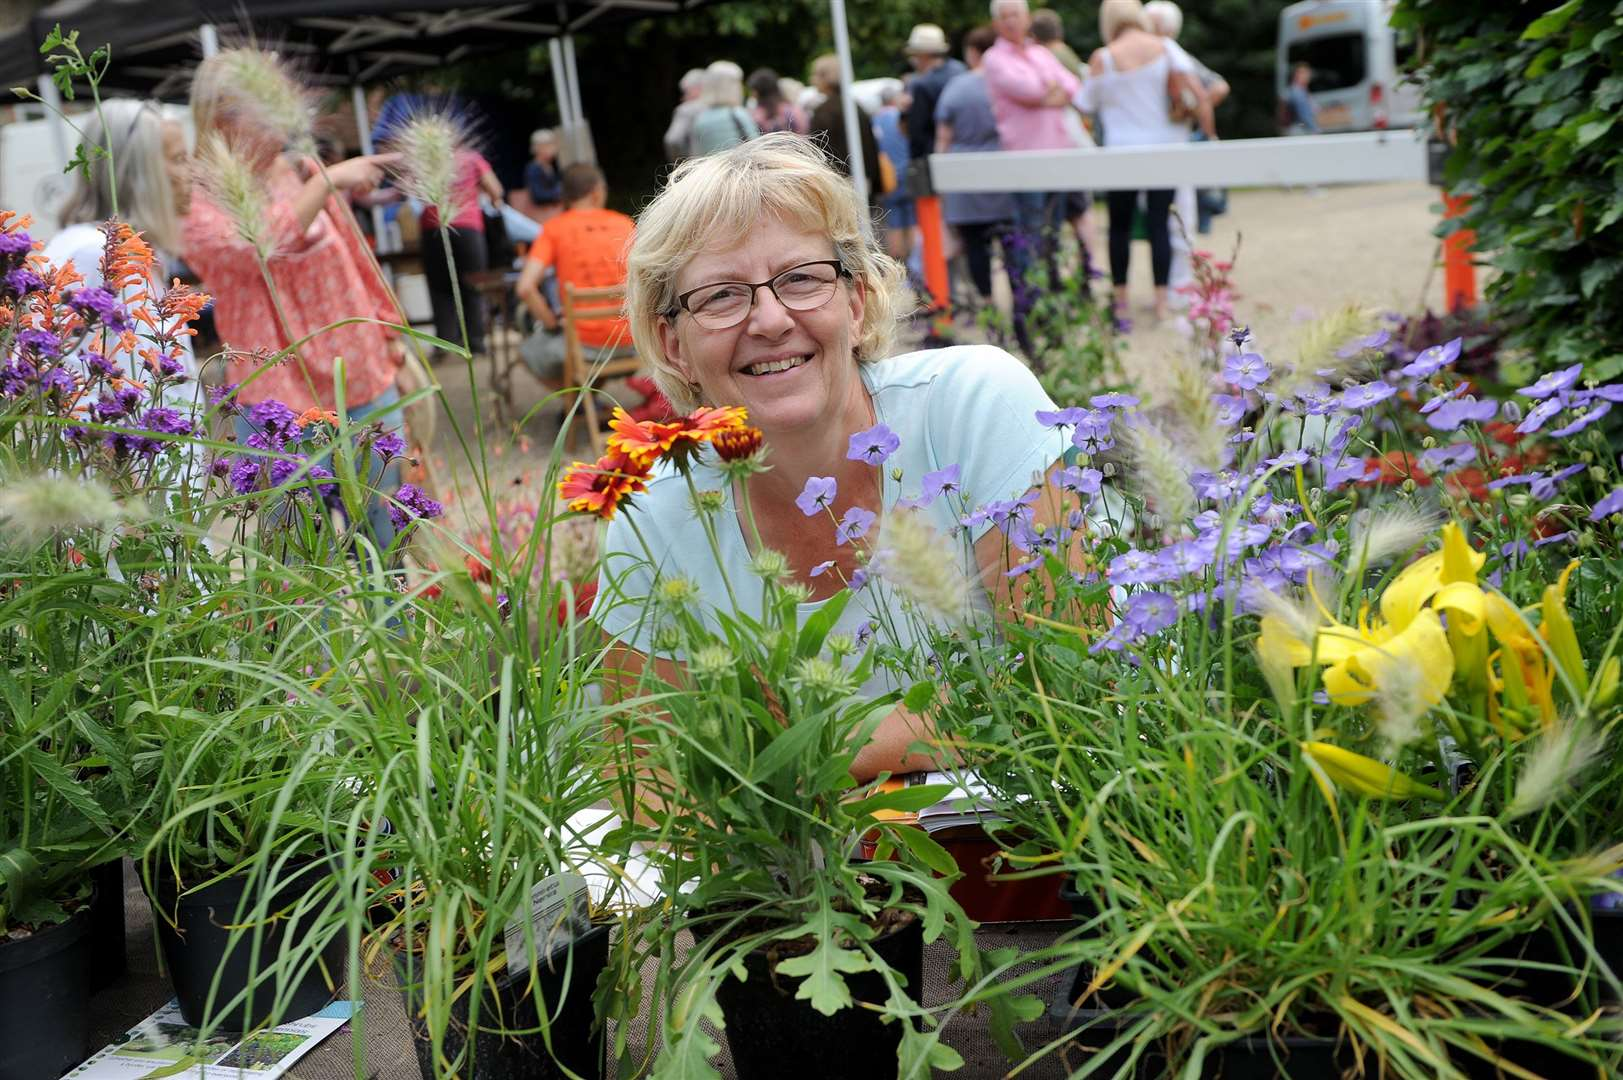 Clare Priory Craft Fair 2019..Pictured: Geraldine Arnold with her plant stall 'Paugers Plants'...PICTURE: Mecha Morton. (13785395)